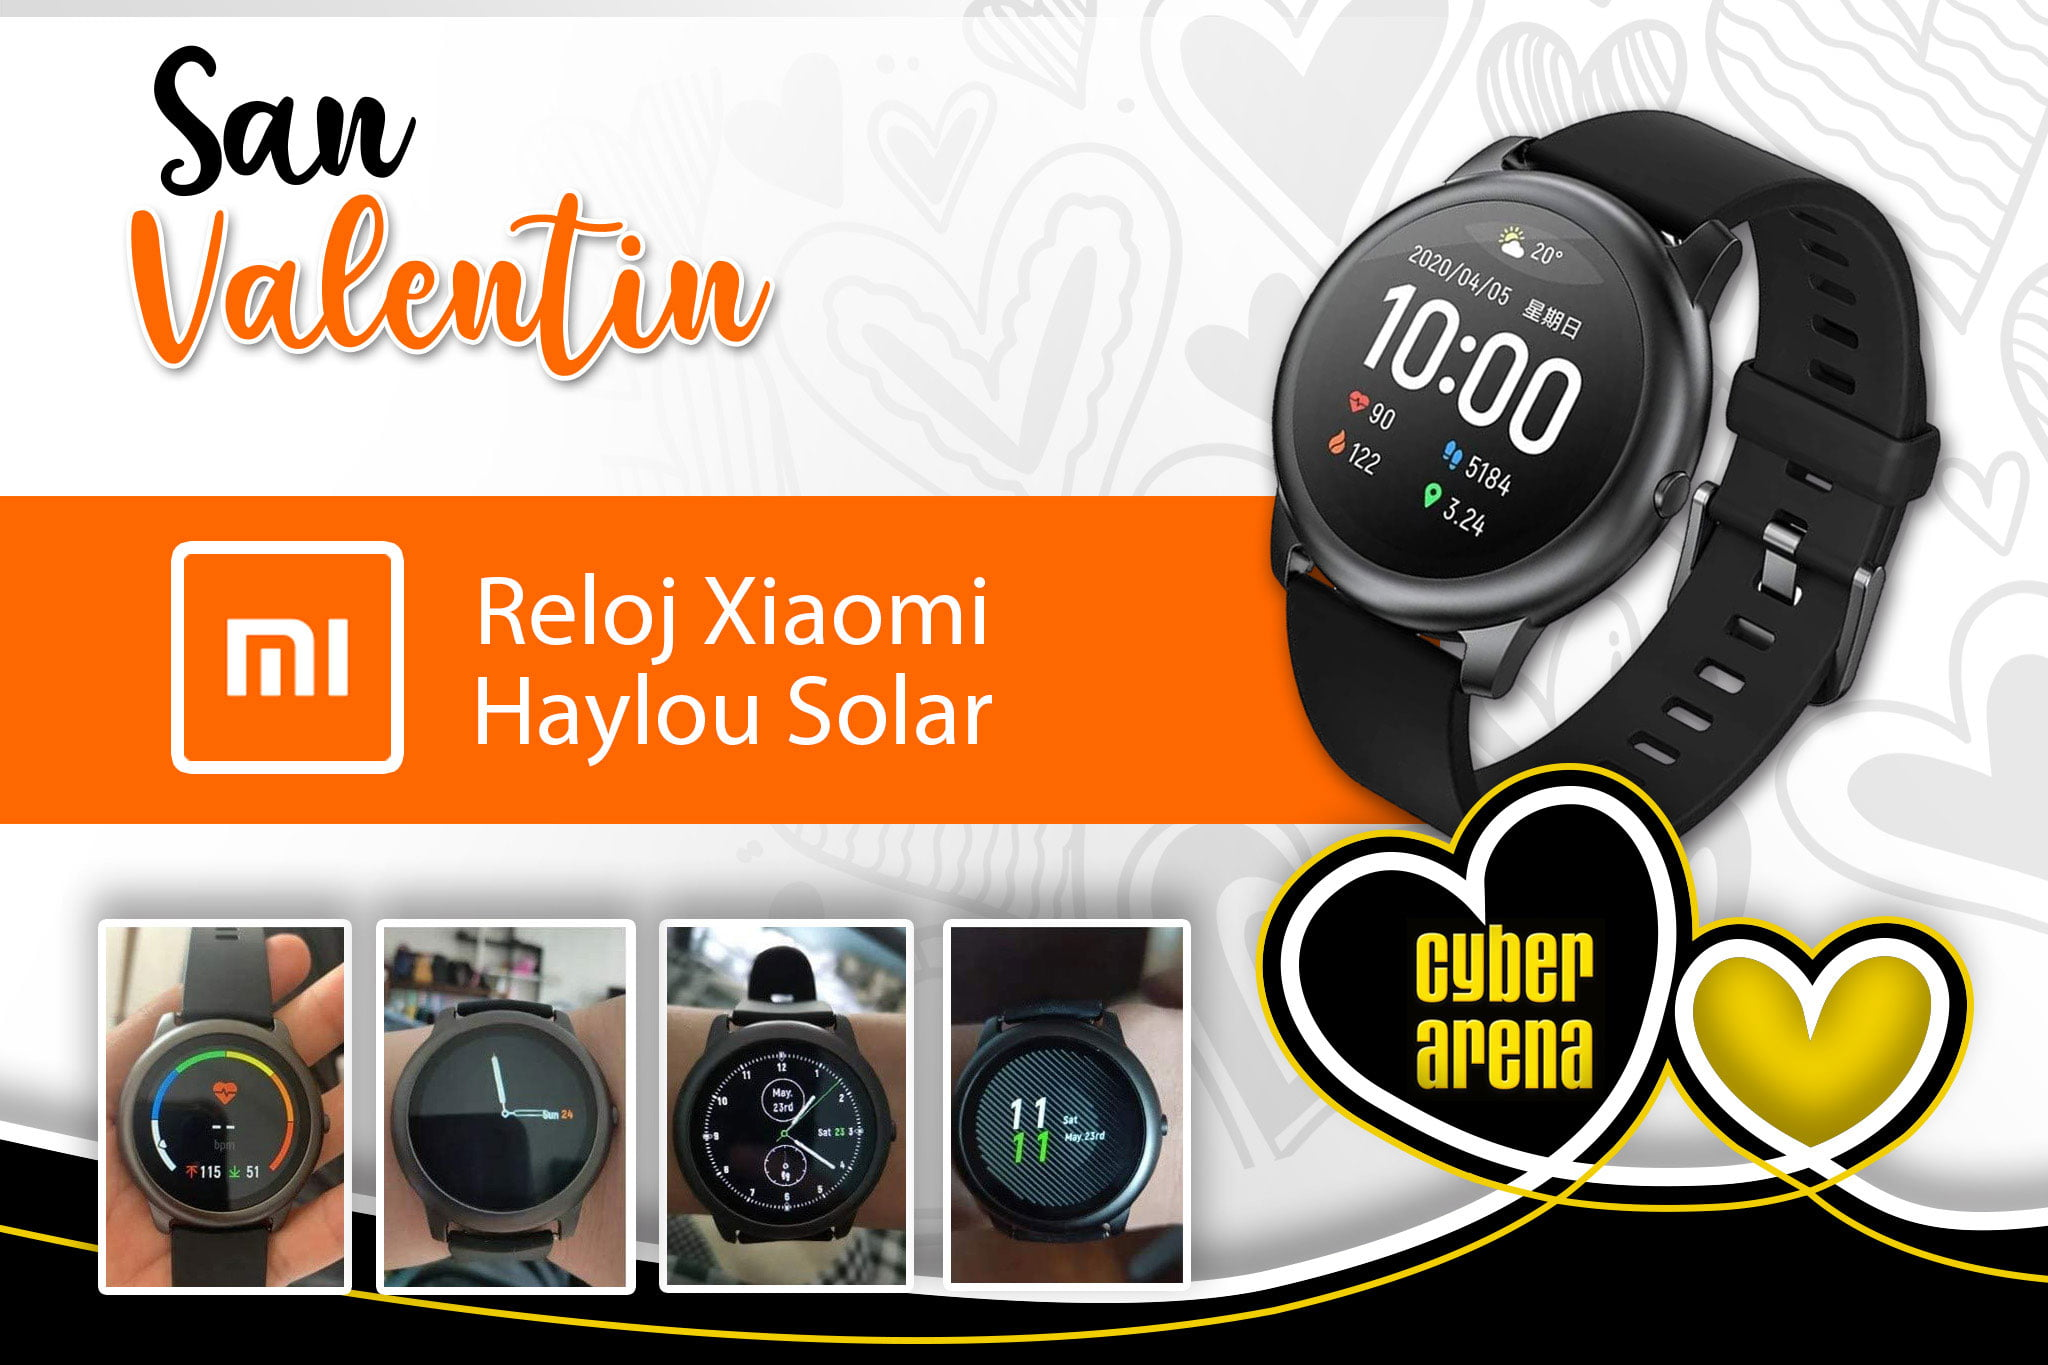 Xiaomi Haylou Solar Watch - Cyber ​​Arena